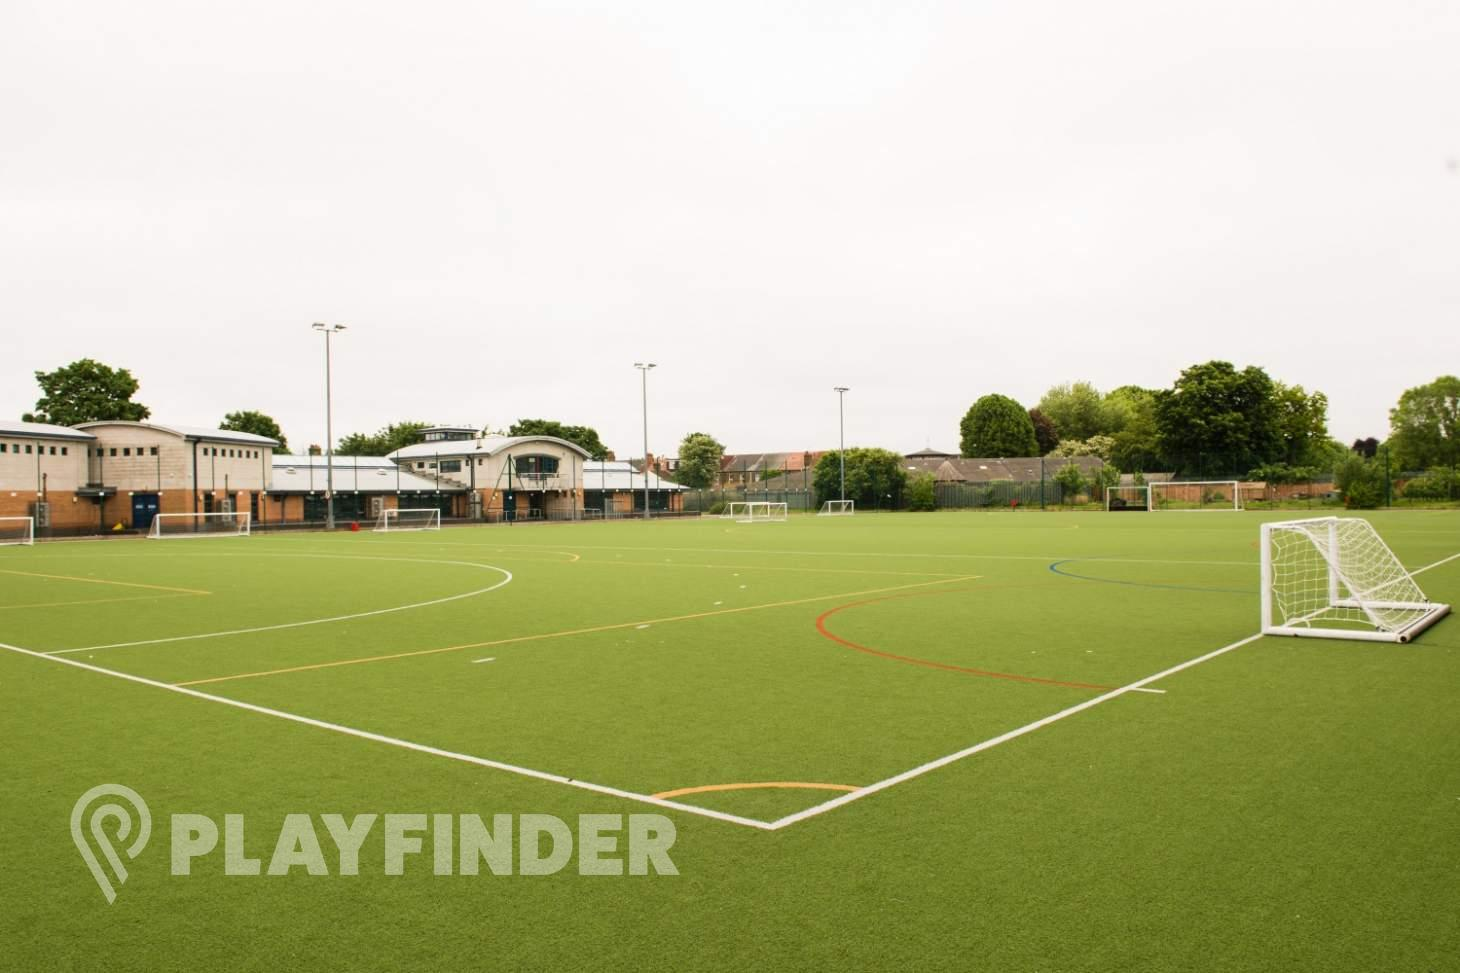 Featherstone Sports Centre 9 a side | Astroturf football pitch